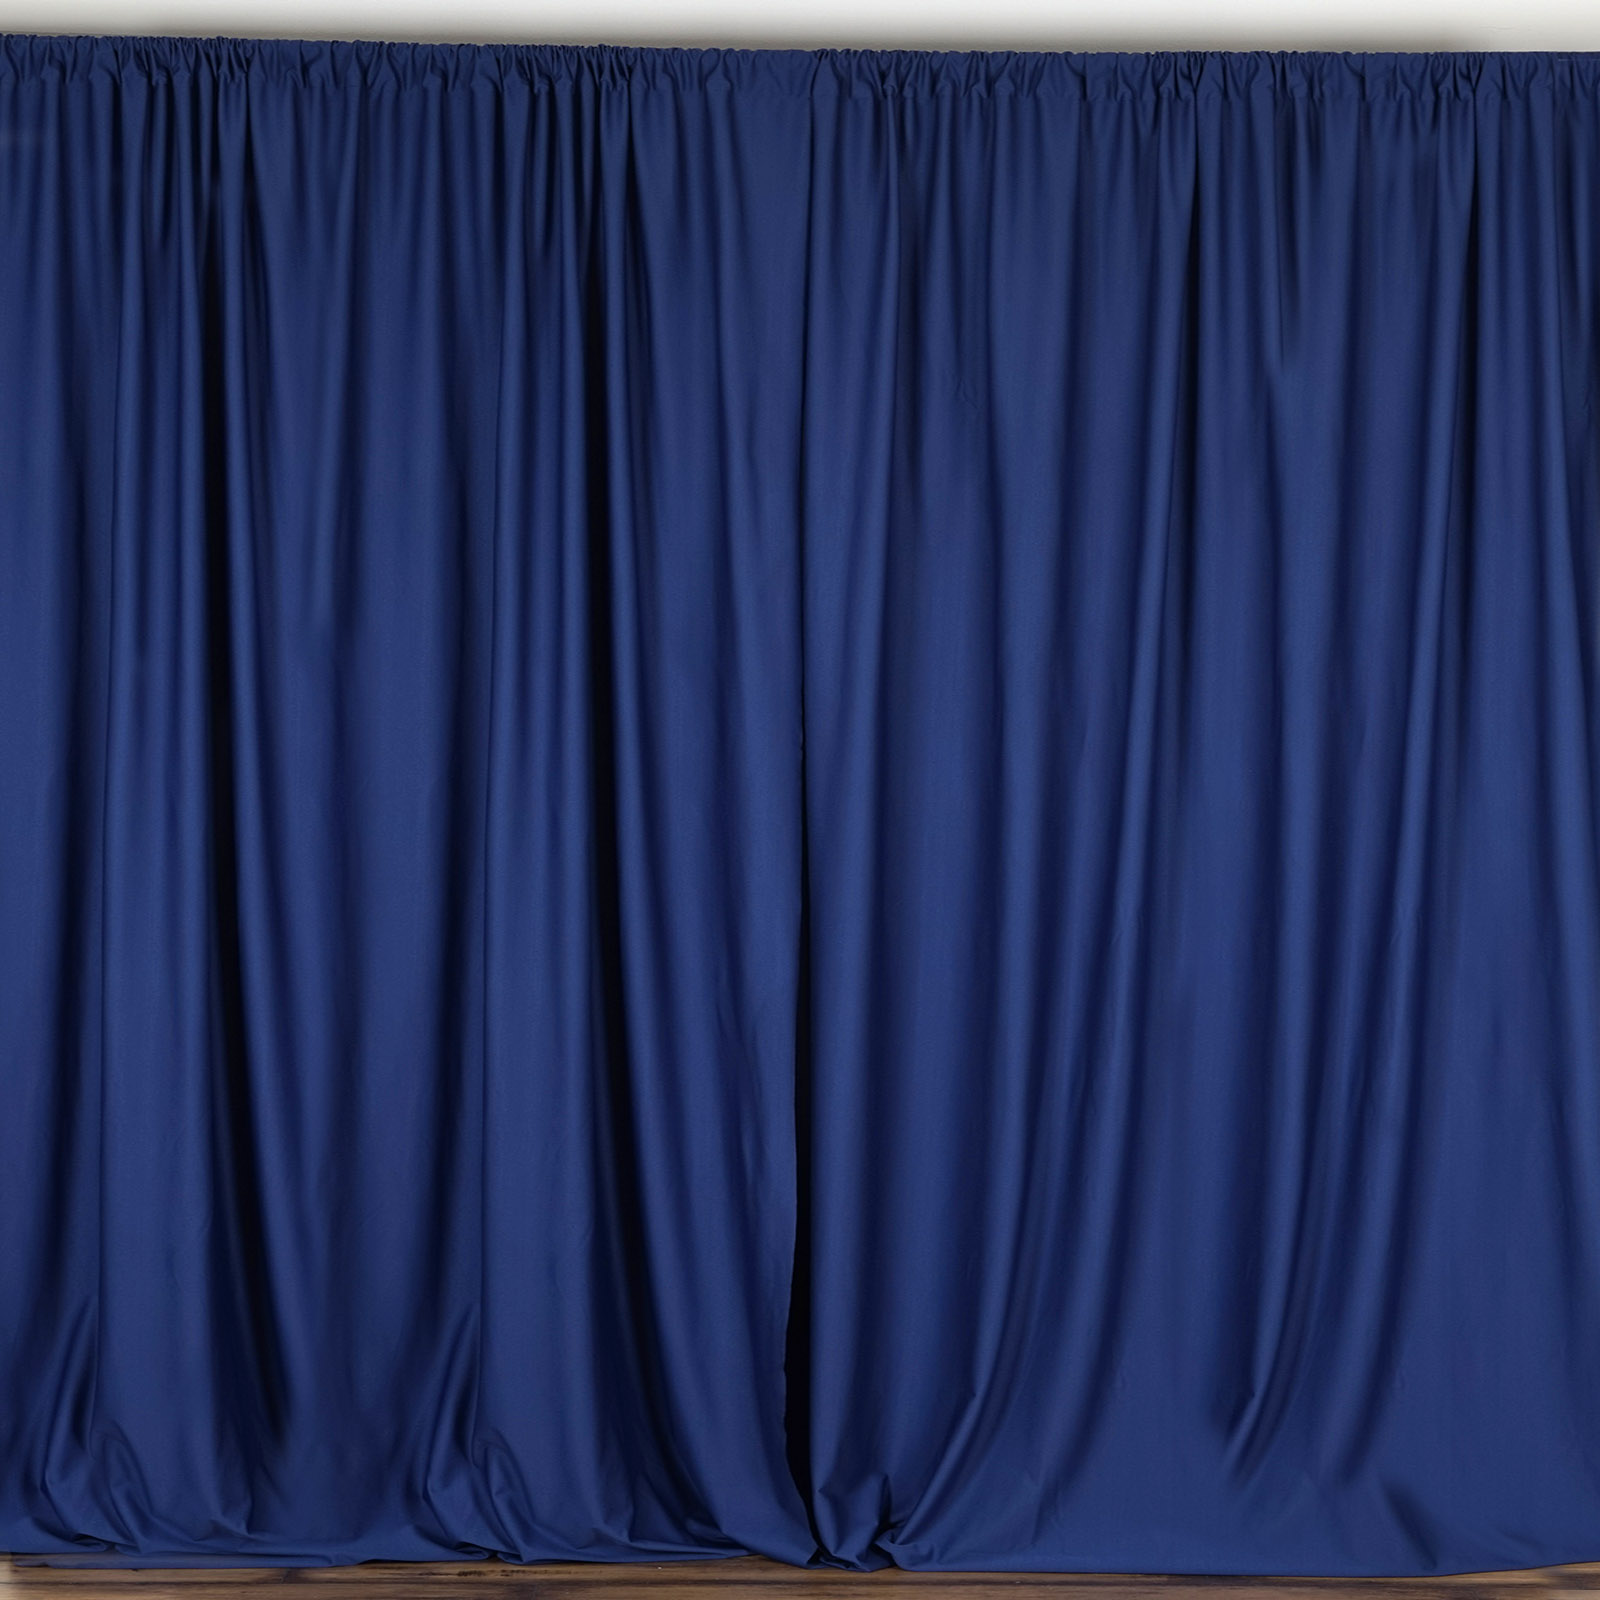 High Quality 10 Ft X 10 Ft Polyester Professional BACKDROP